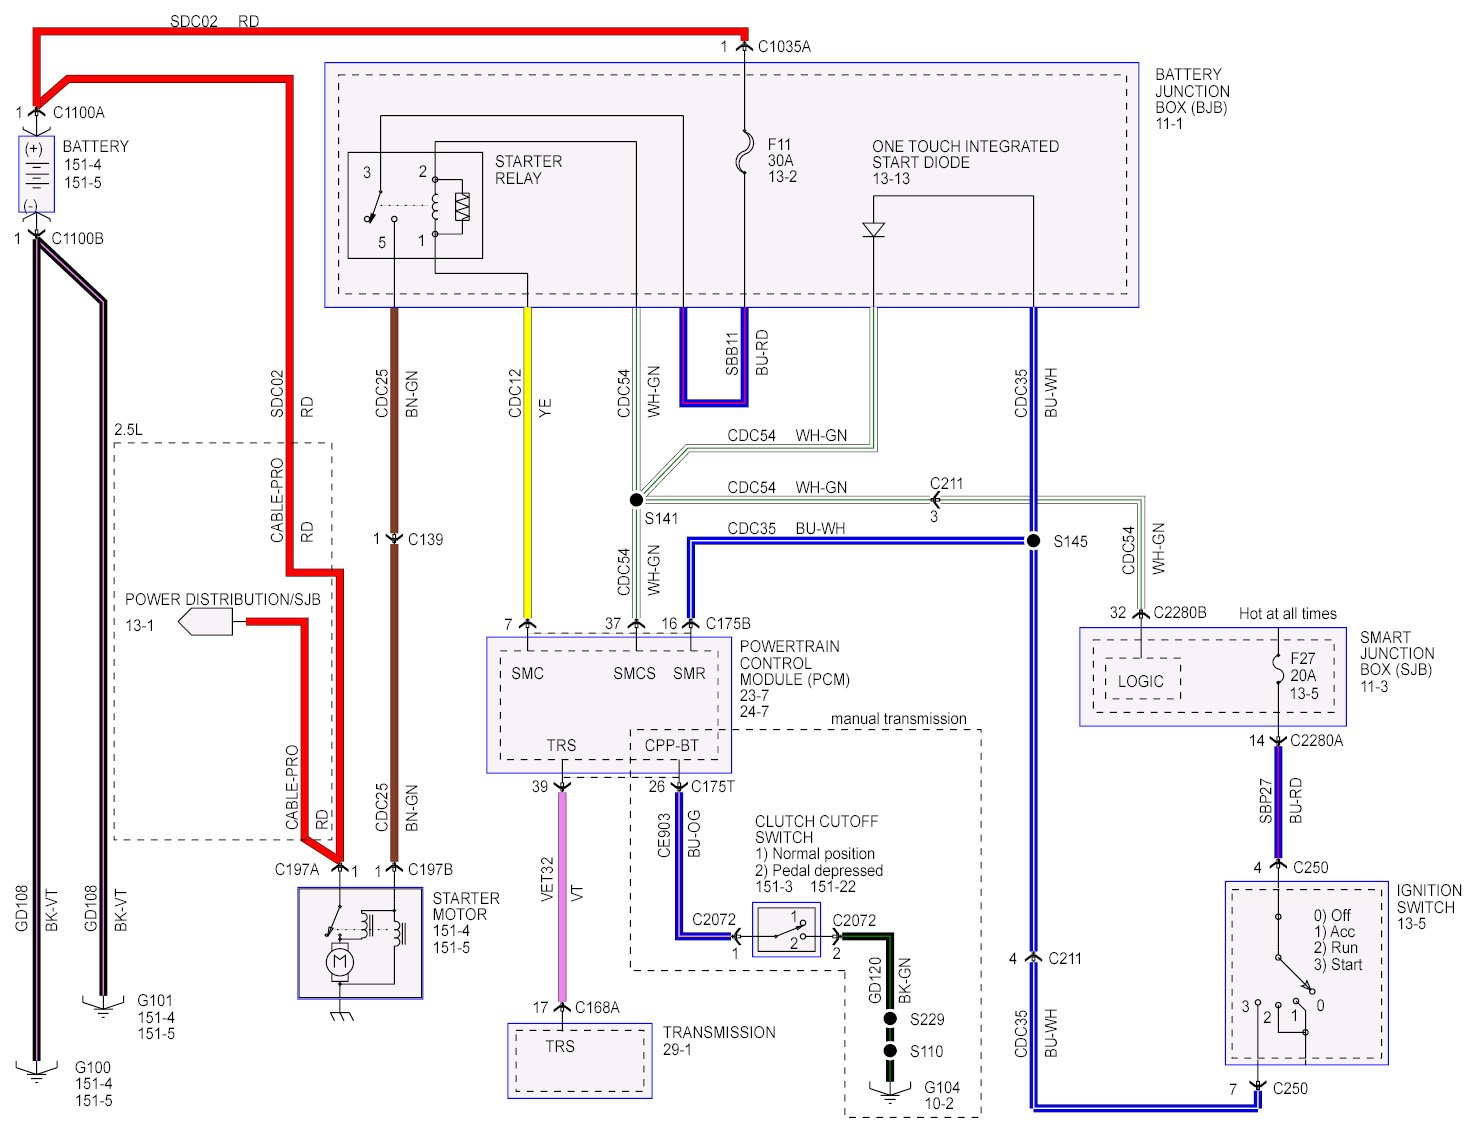 2011 Ford Escape Wiring Diagram from arcofsmithcounty.com